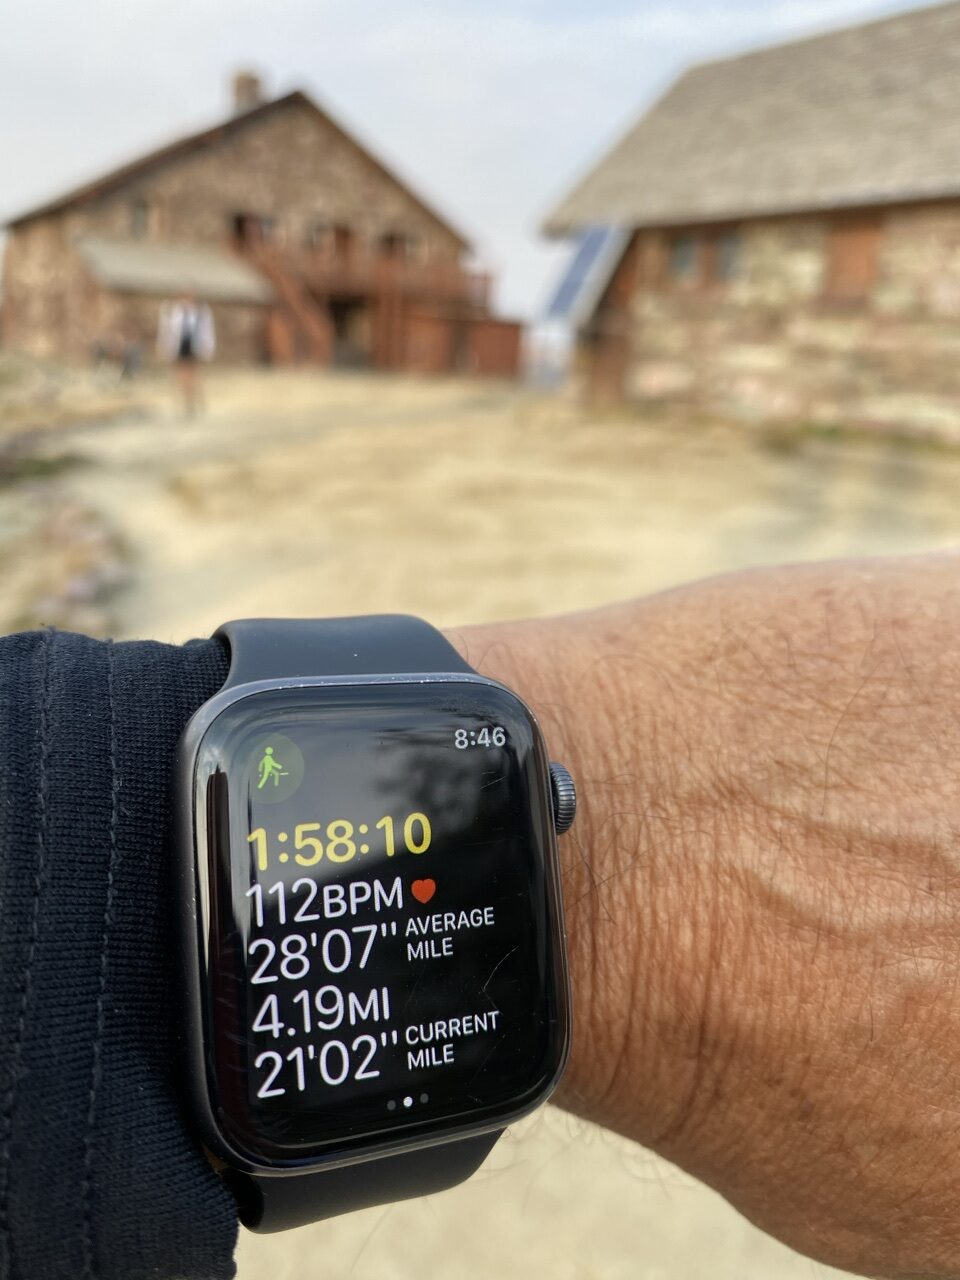 high mountain chalet blurred in background with foreground an Apple Watch screen